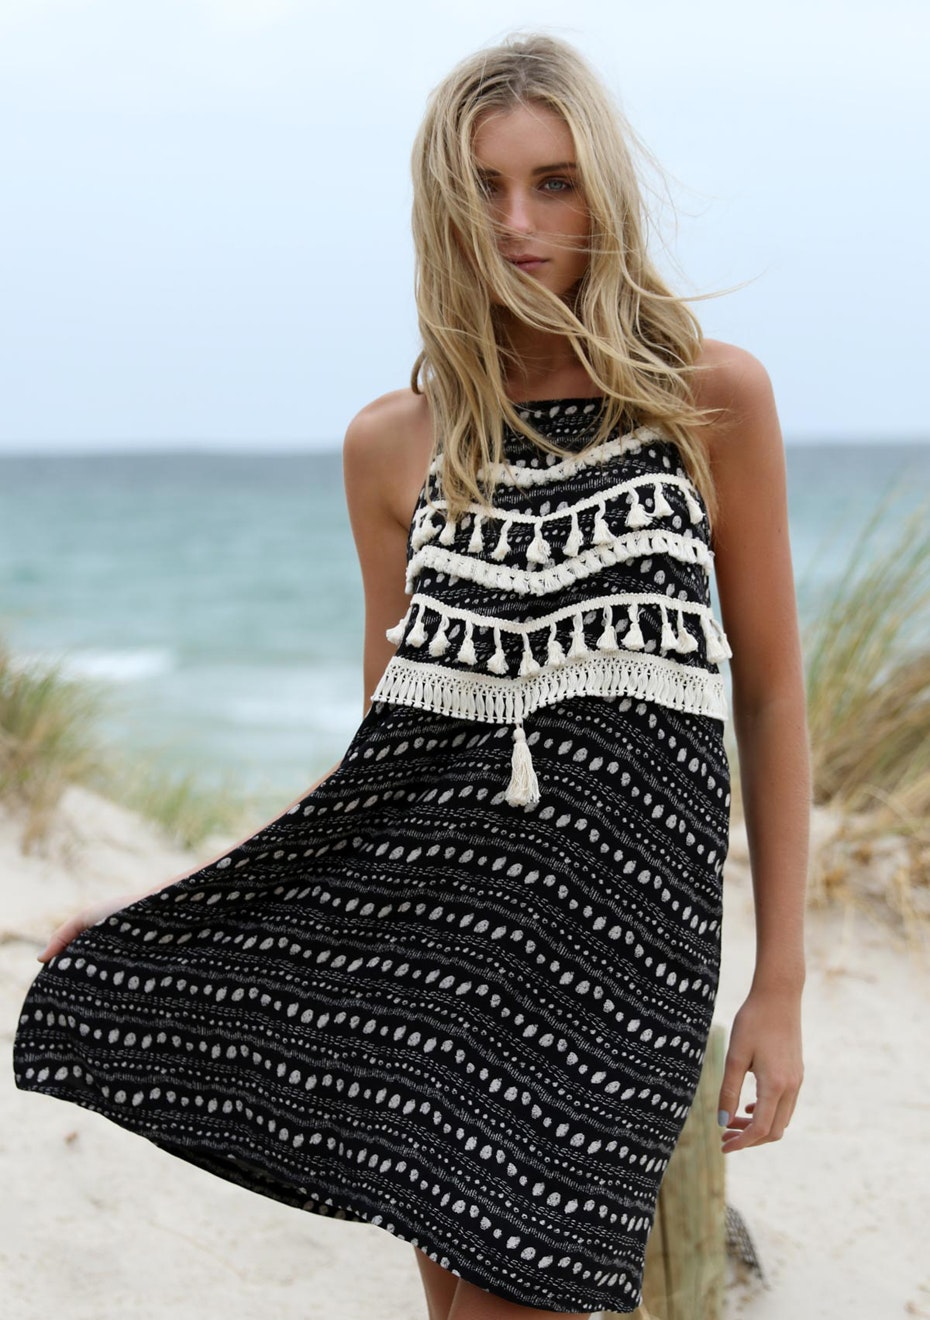 Madison - SUNSEEKER DRESS - BLACK PRINT